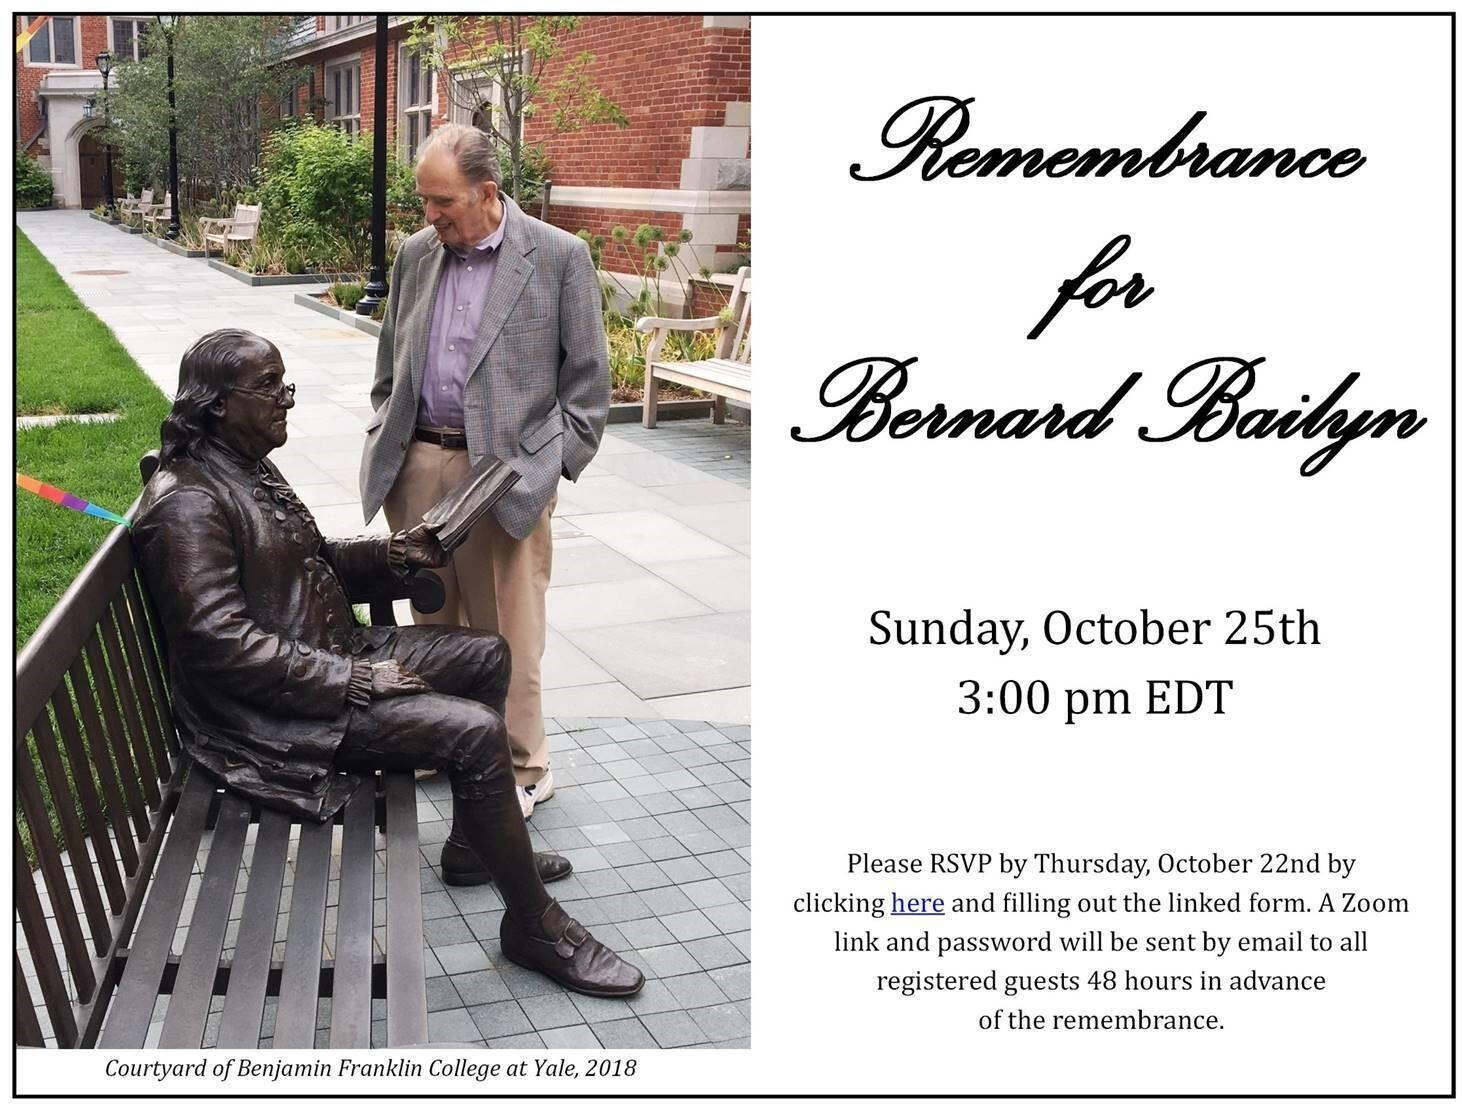 Remembrance for Bernard Bailyn